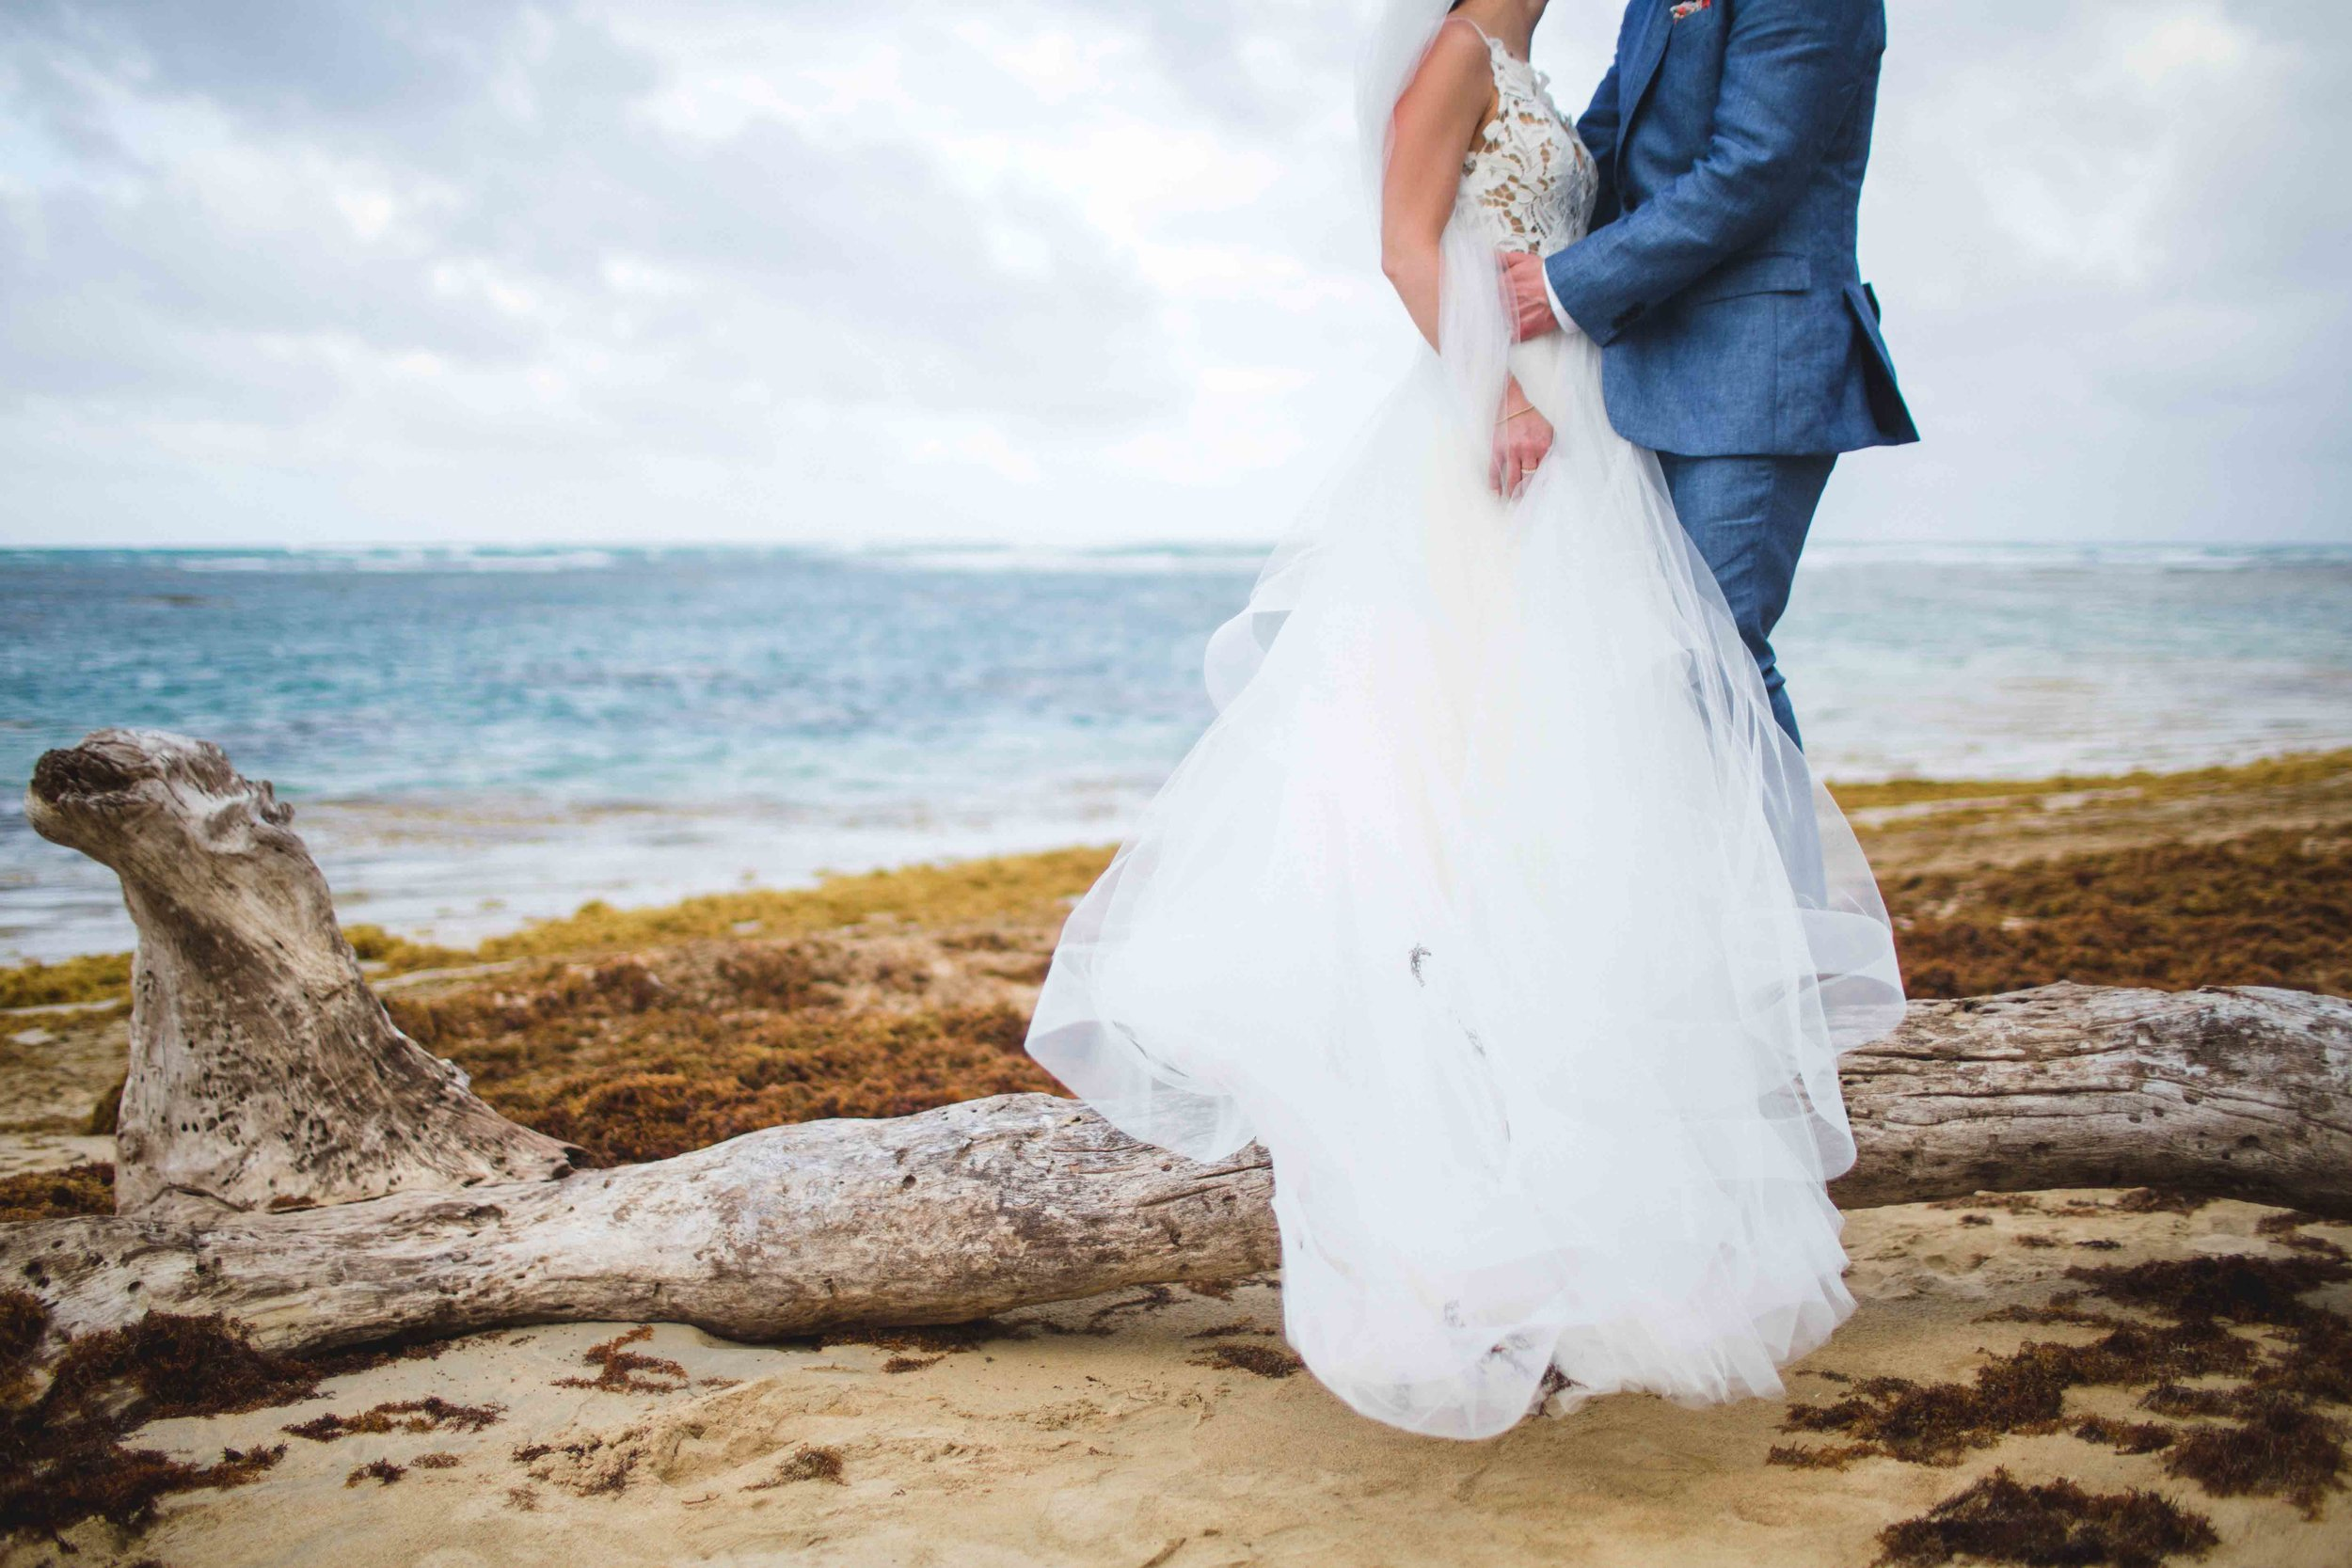 punta-cana-dominican-republic-wedding-photographer-125.jpg